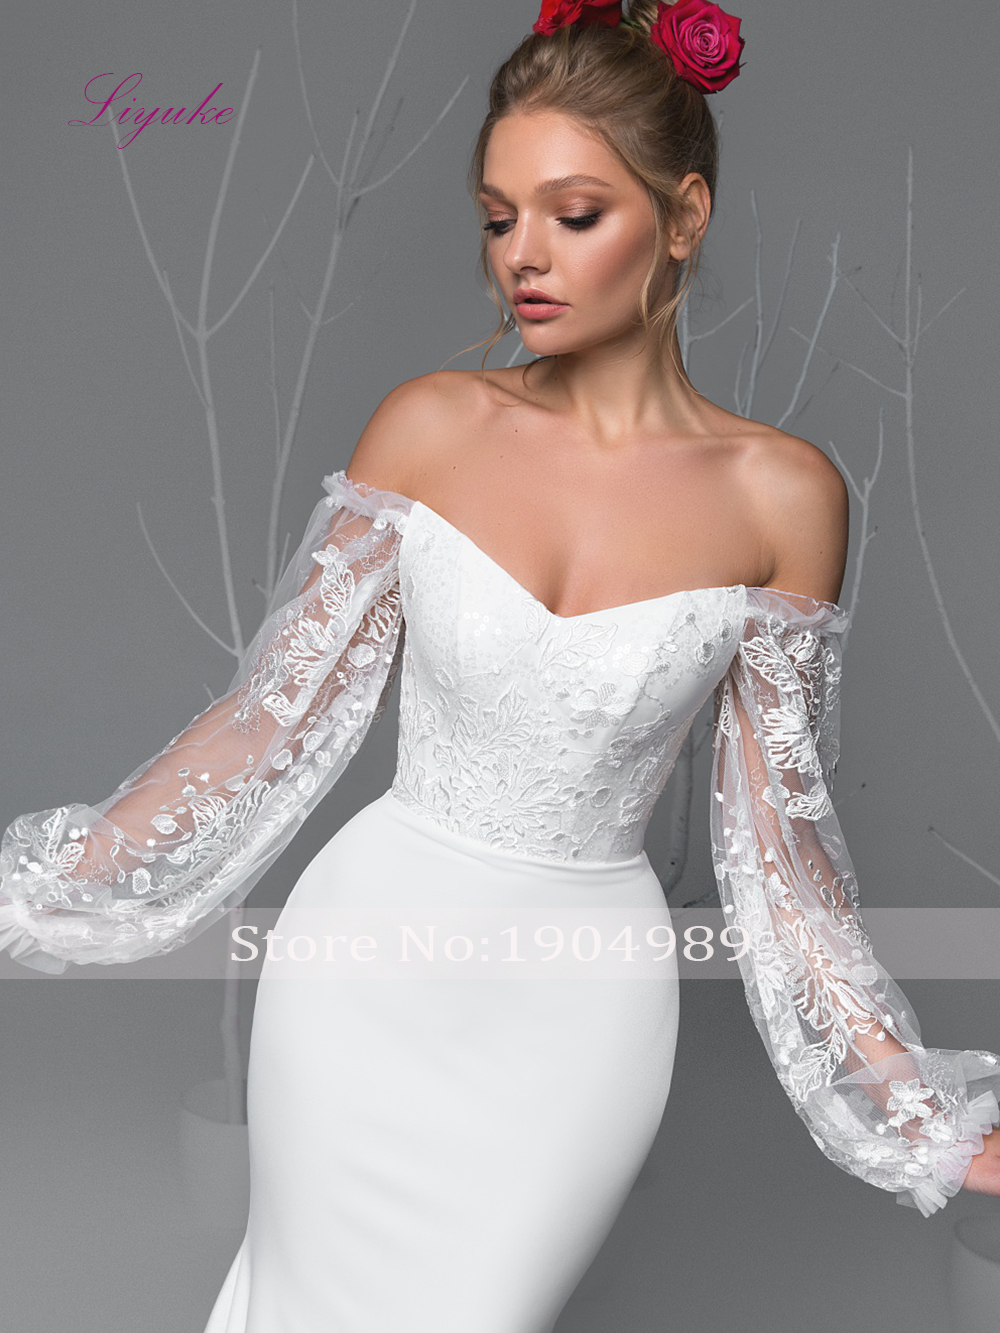 Liyuke 2019 New Sheath Wedding Dress Soft Stain Lace long sleeves collar Neck Appliques